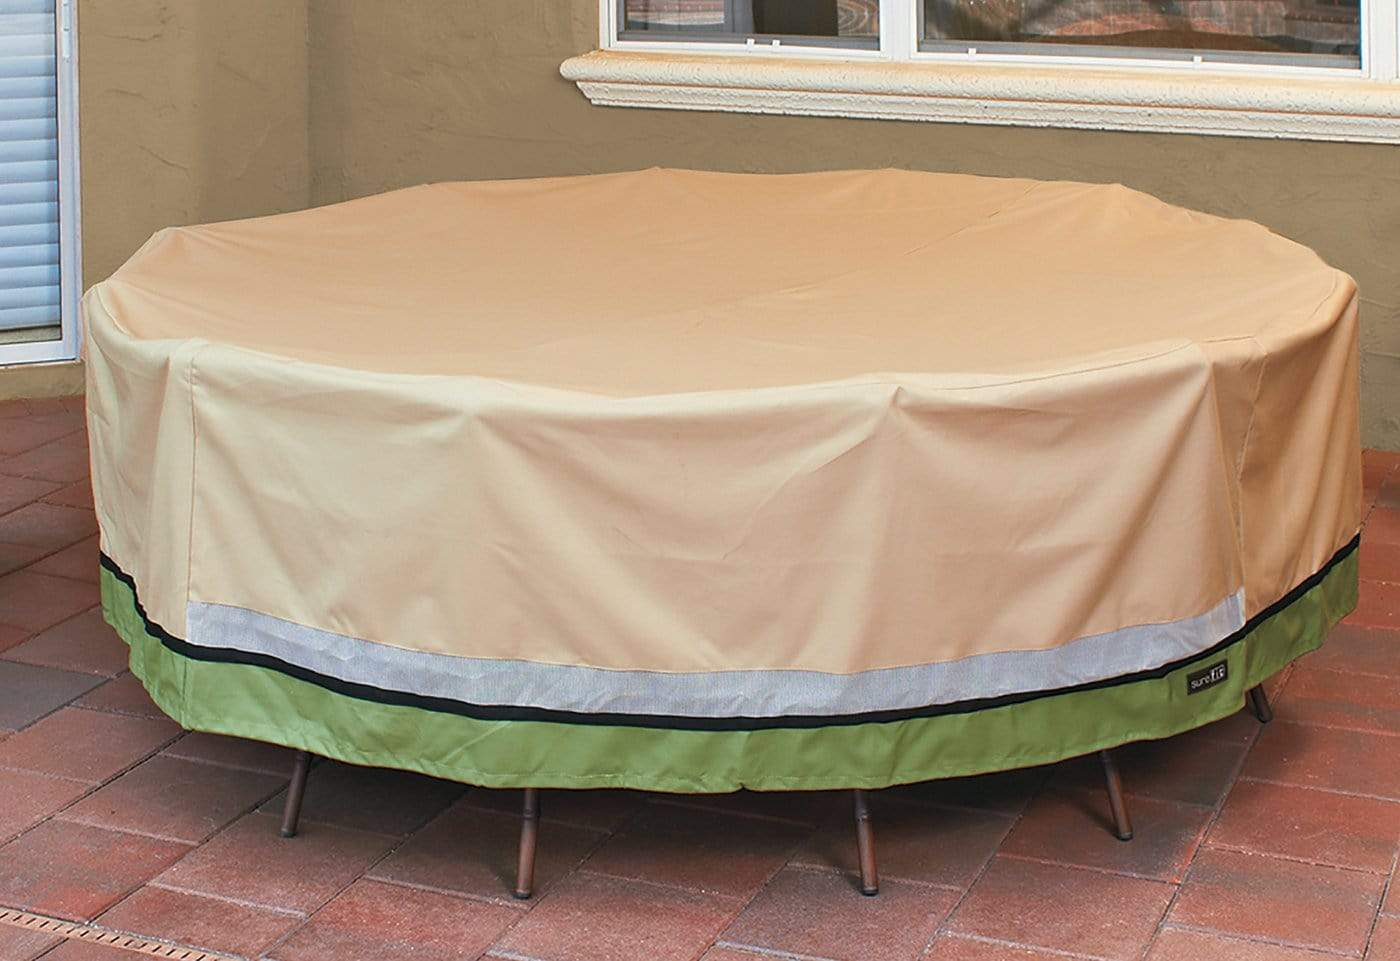 Signature Series Table Cover - Round / Taupe